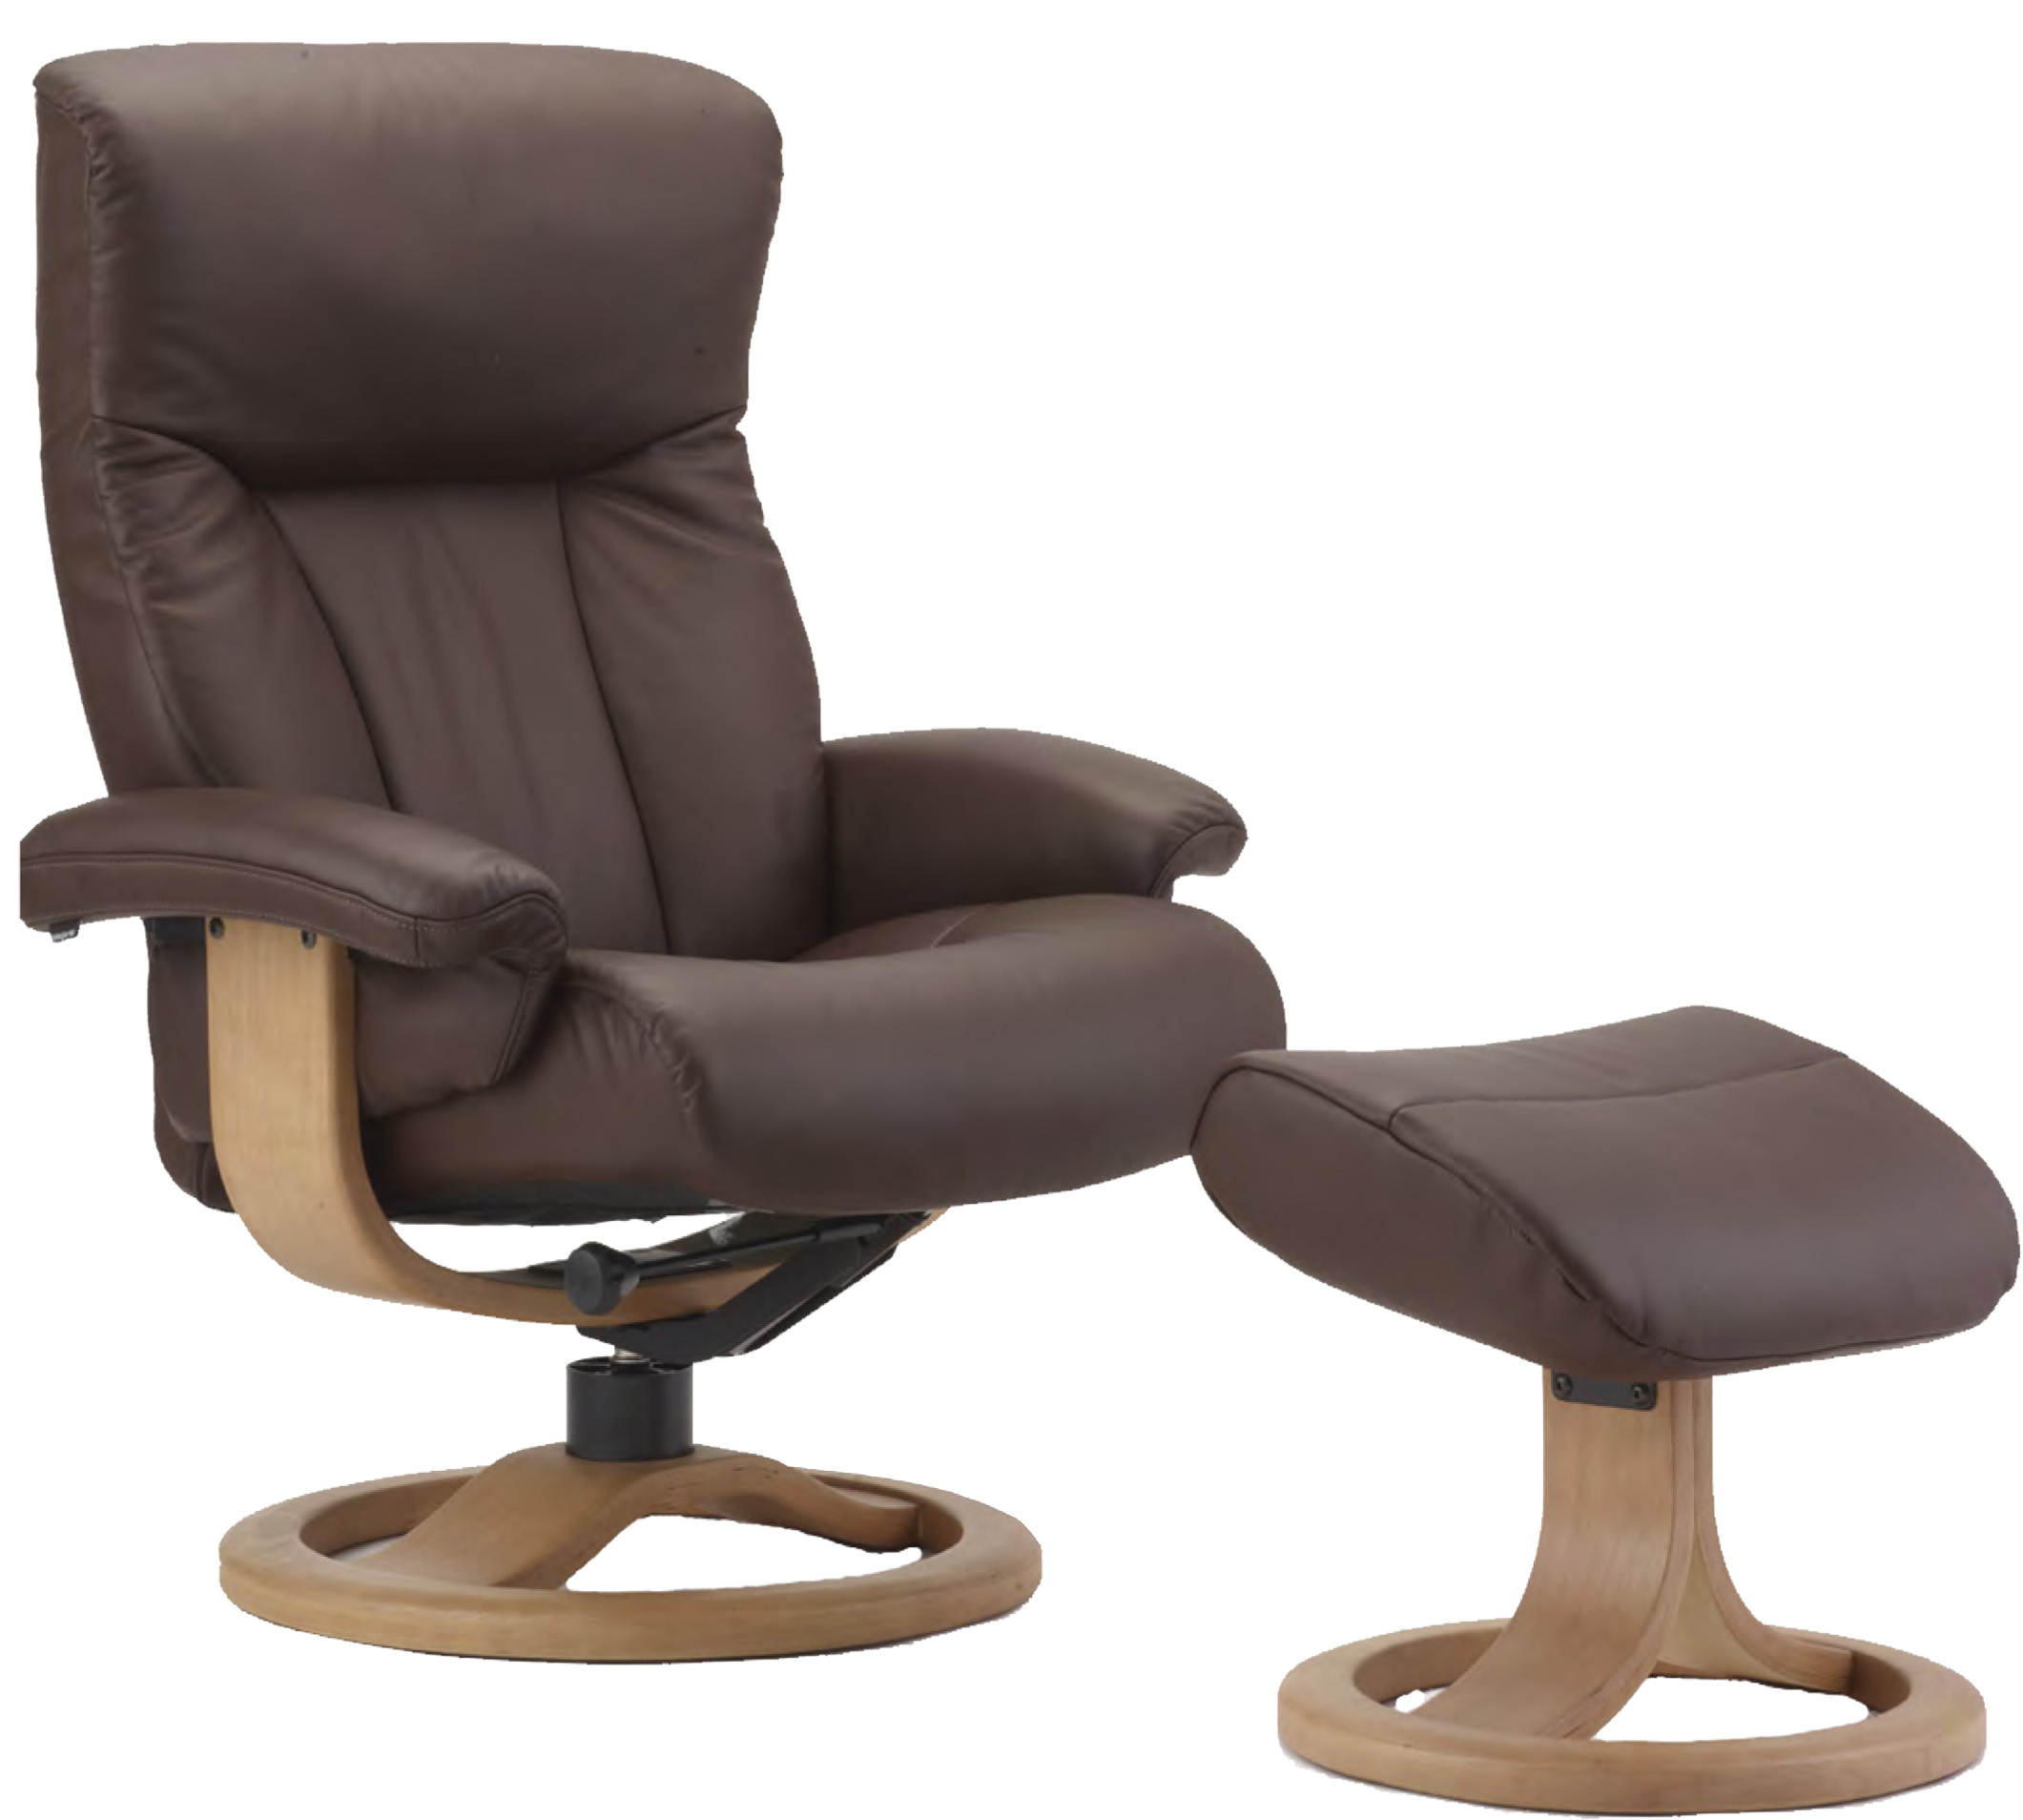 Leather Reclining Chairs Fjords Scandic Ergonomic Leather Recliner Chair Ottoman Scandinavian Norwegian Lounge Chair By Hjellegjerde